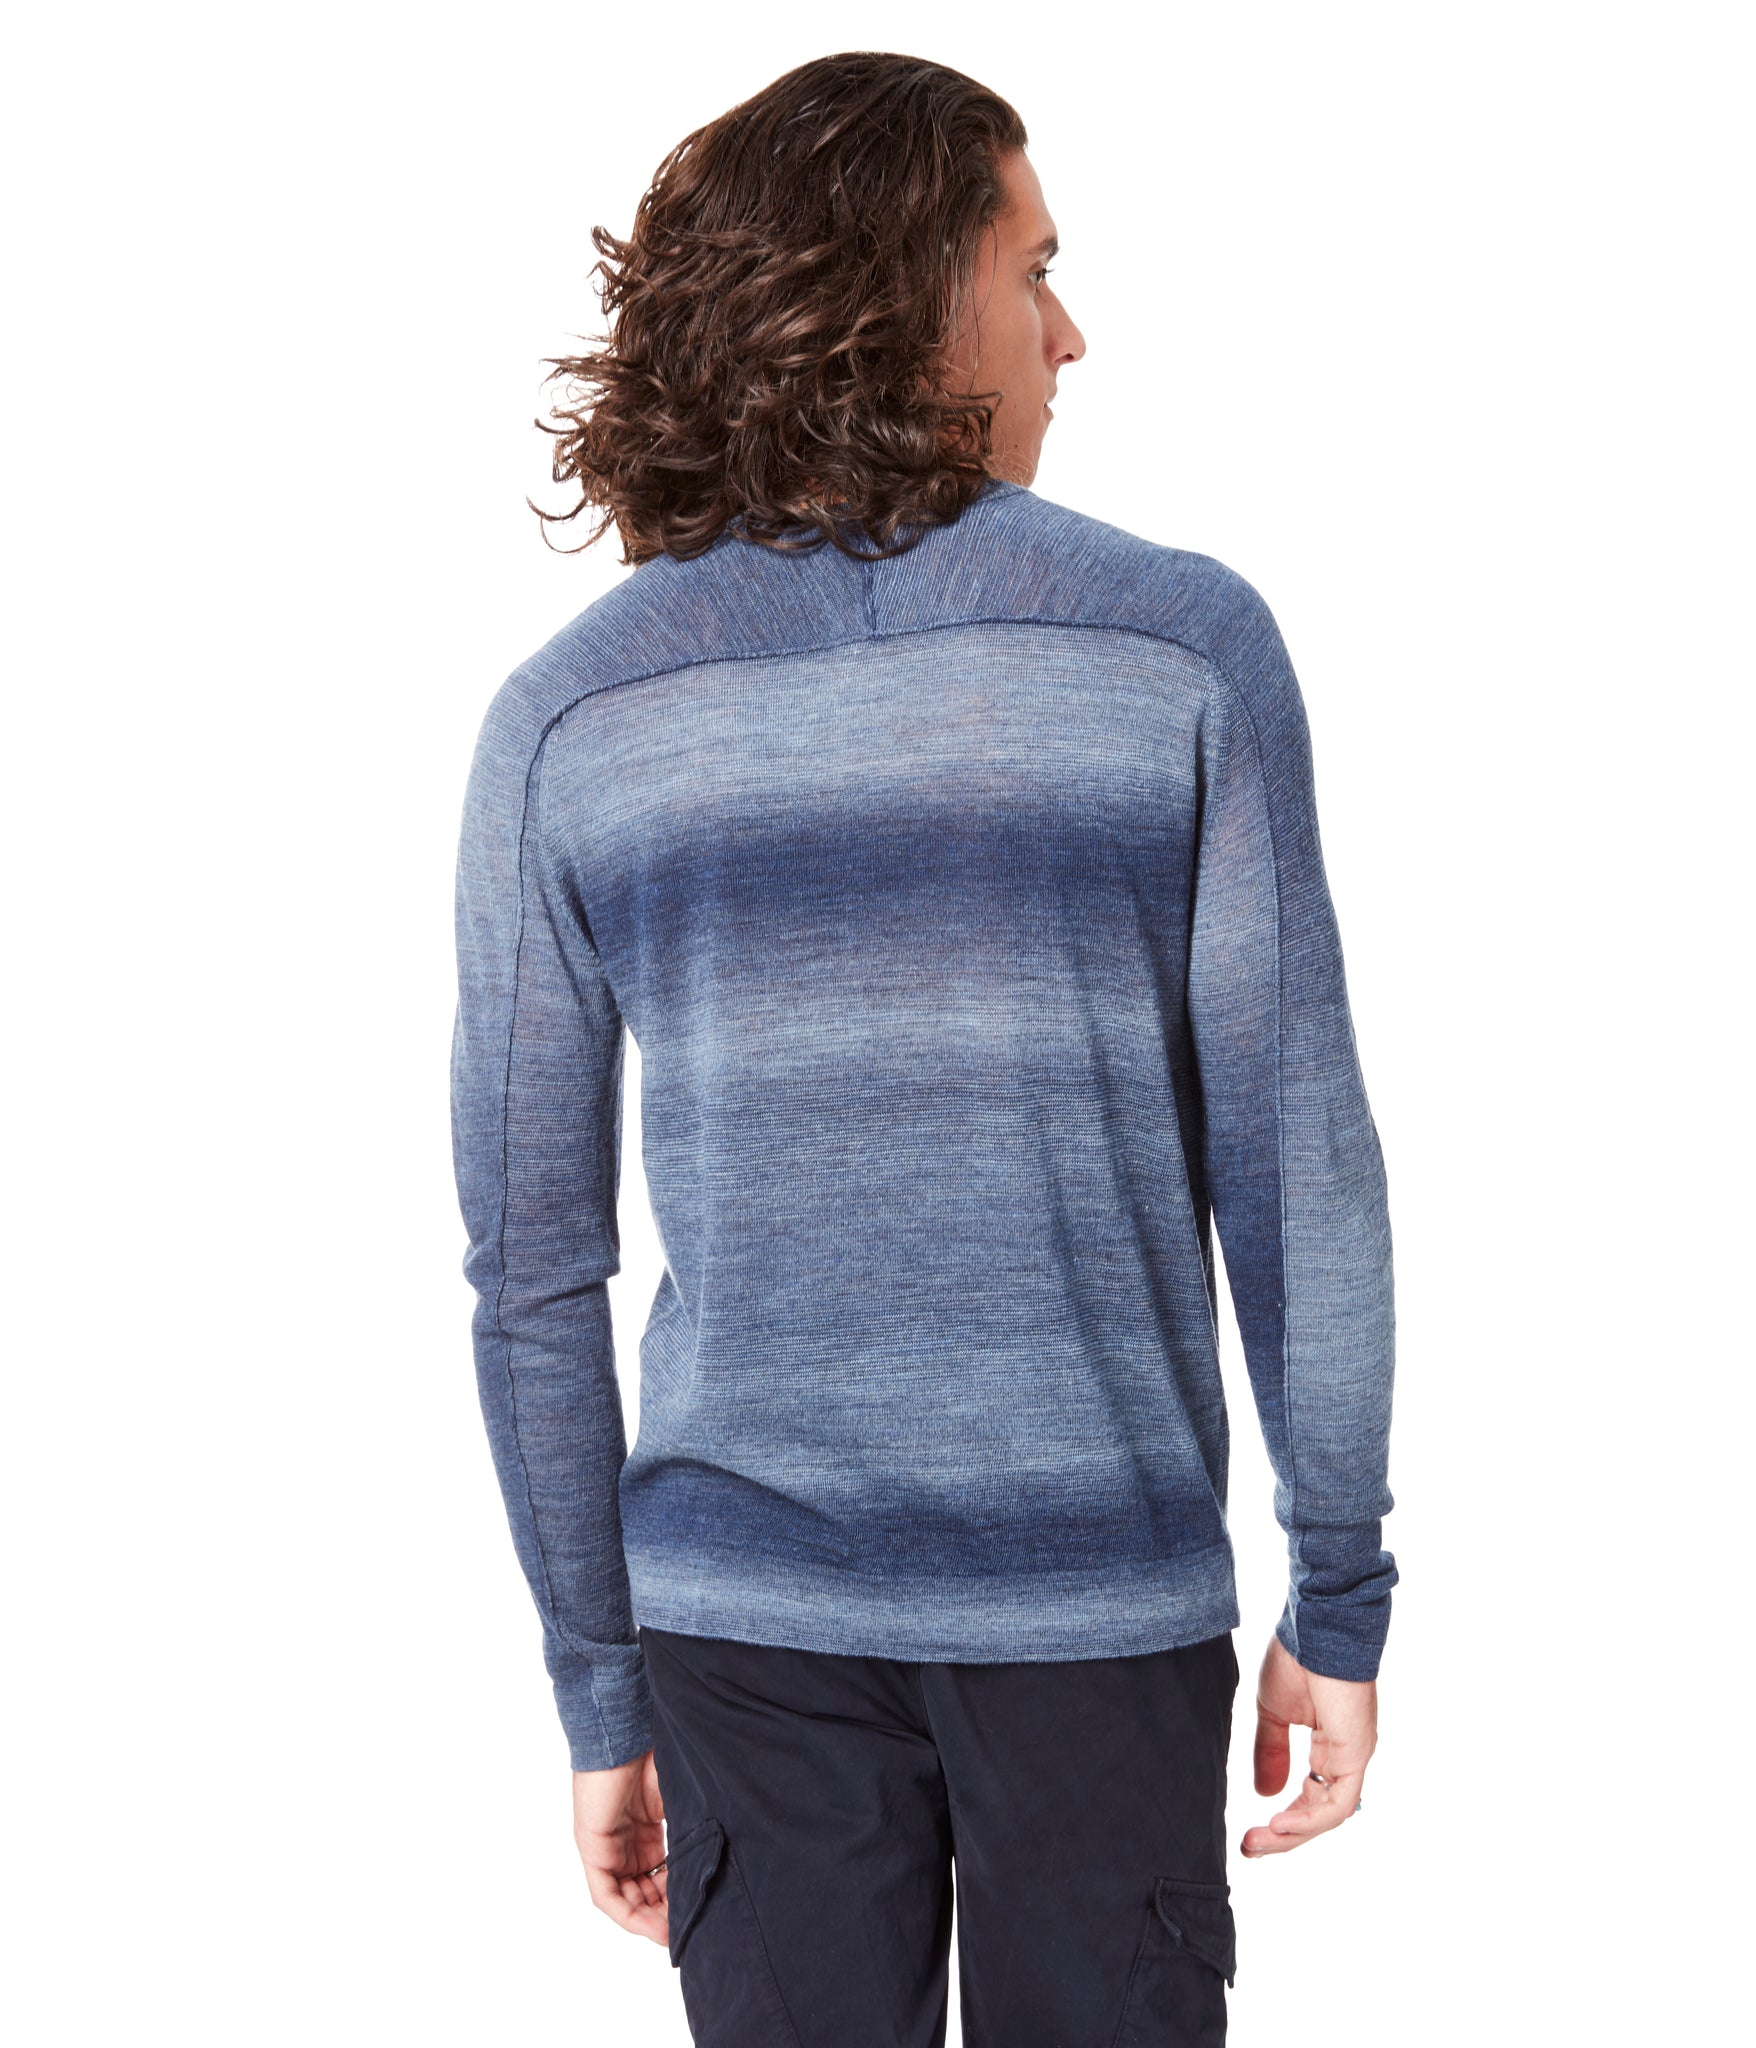 MVP V-Notch Spacedye Sweater - Indigo